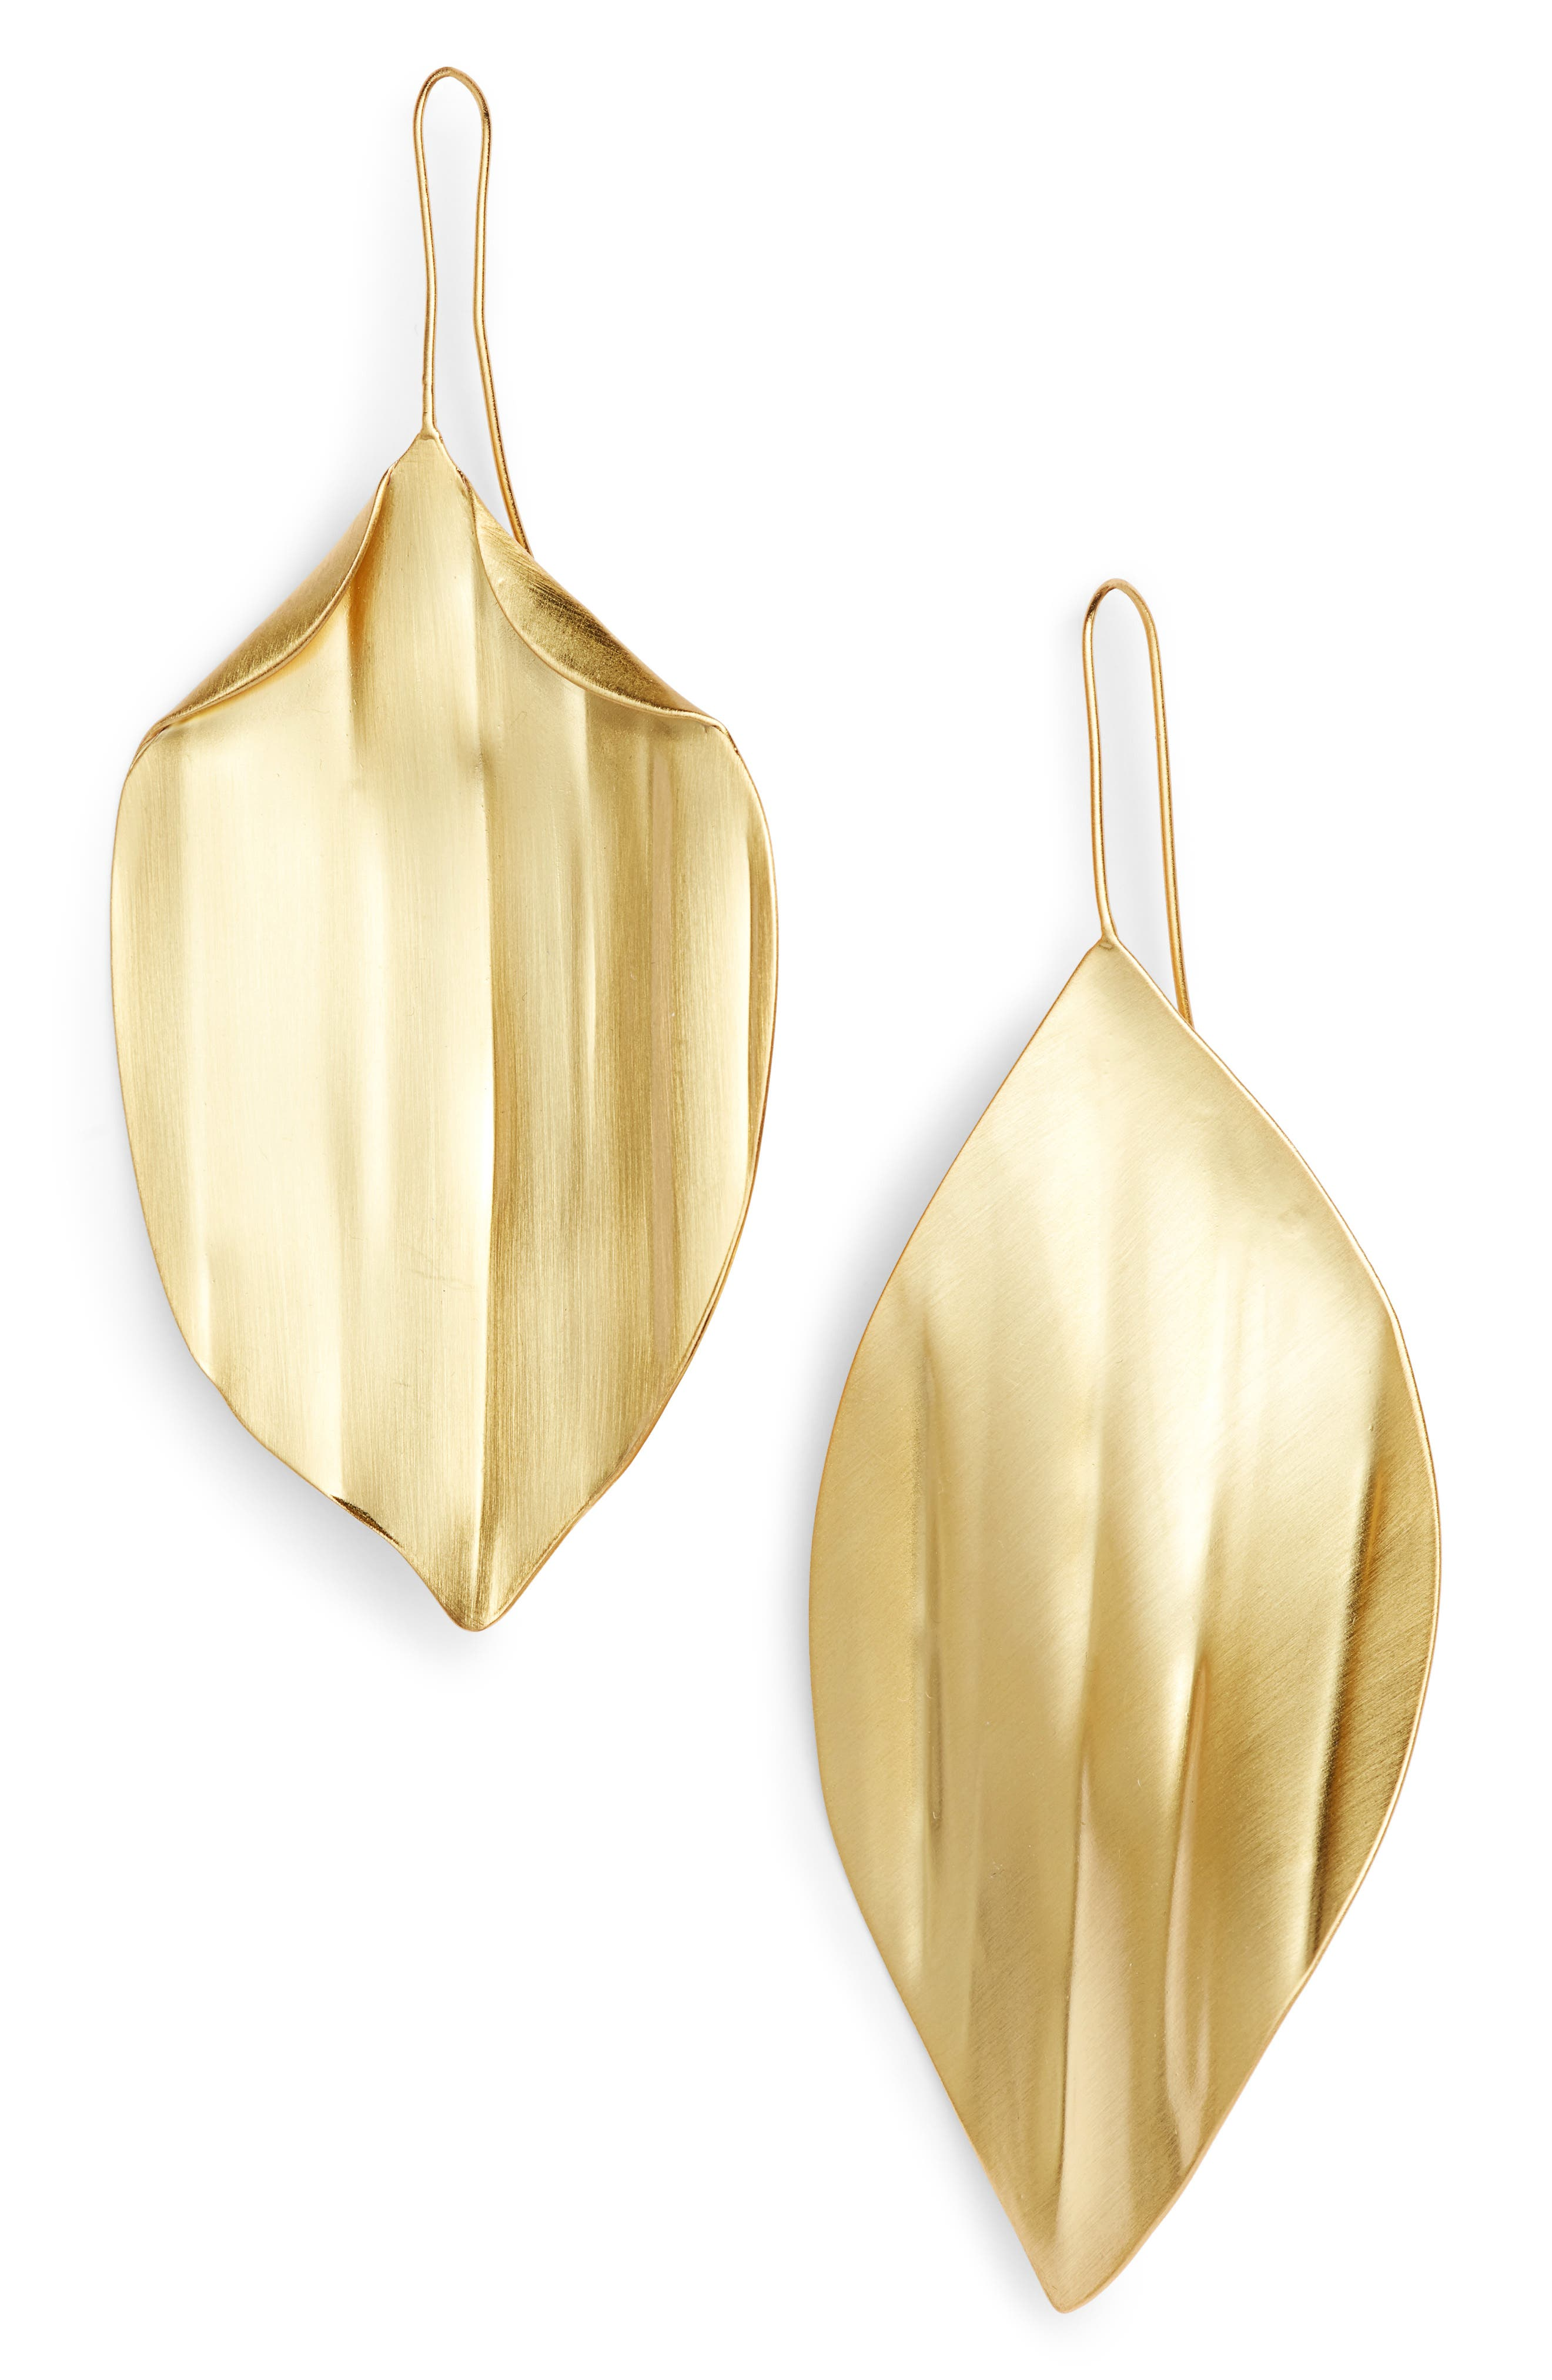 Mismatched Leaf Earrings,                             Main thumbnail 1, color,                             Shiny Brass